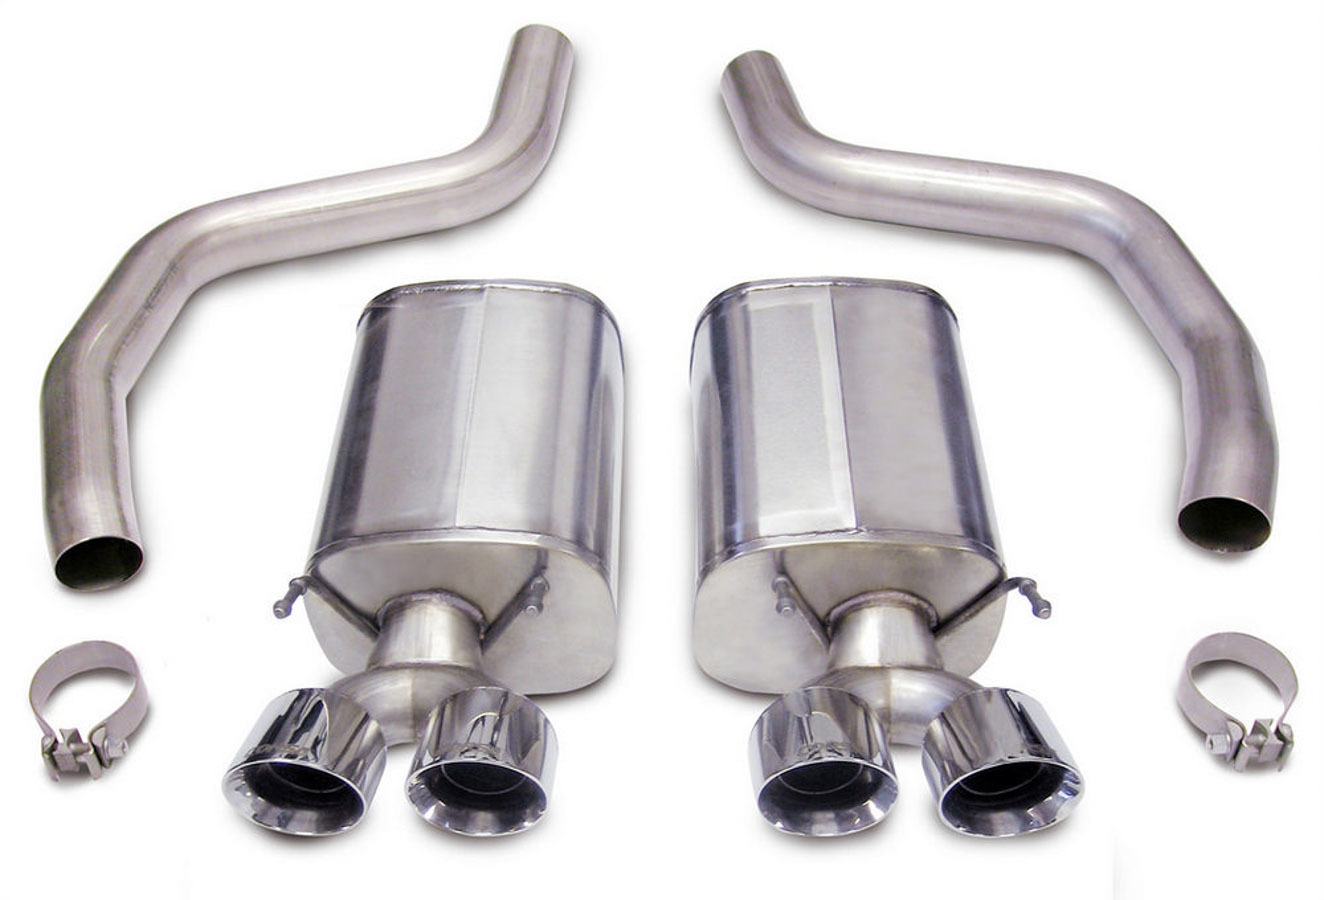 05-10 Corvette 7.0L Trck Axle Back Exhaust System